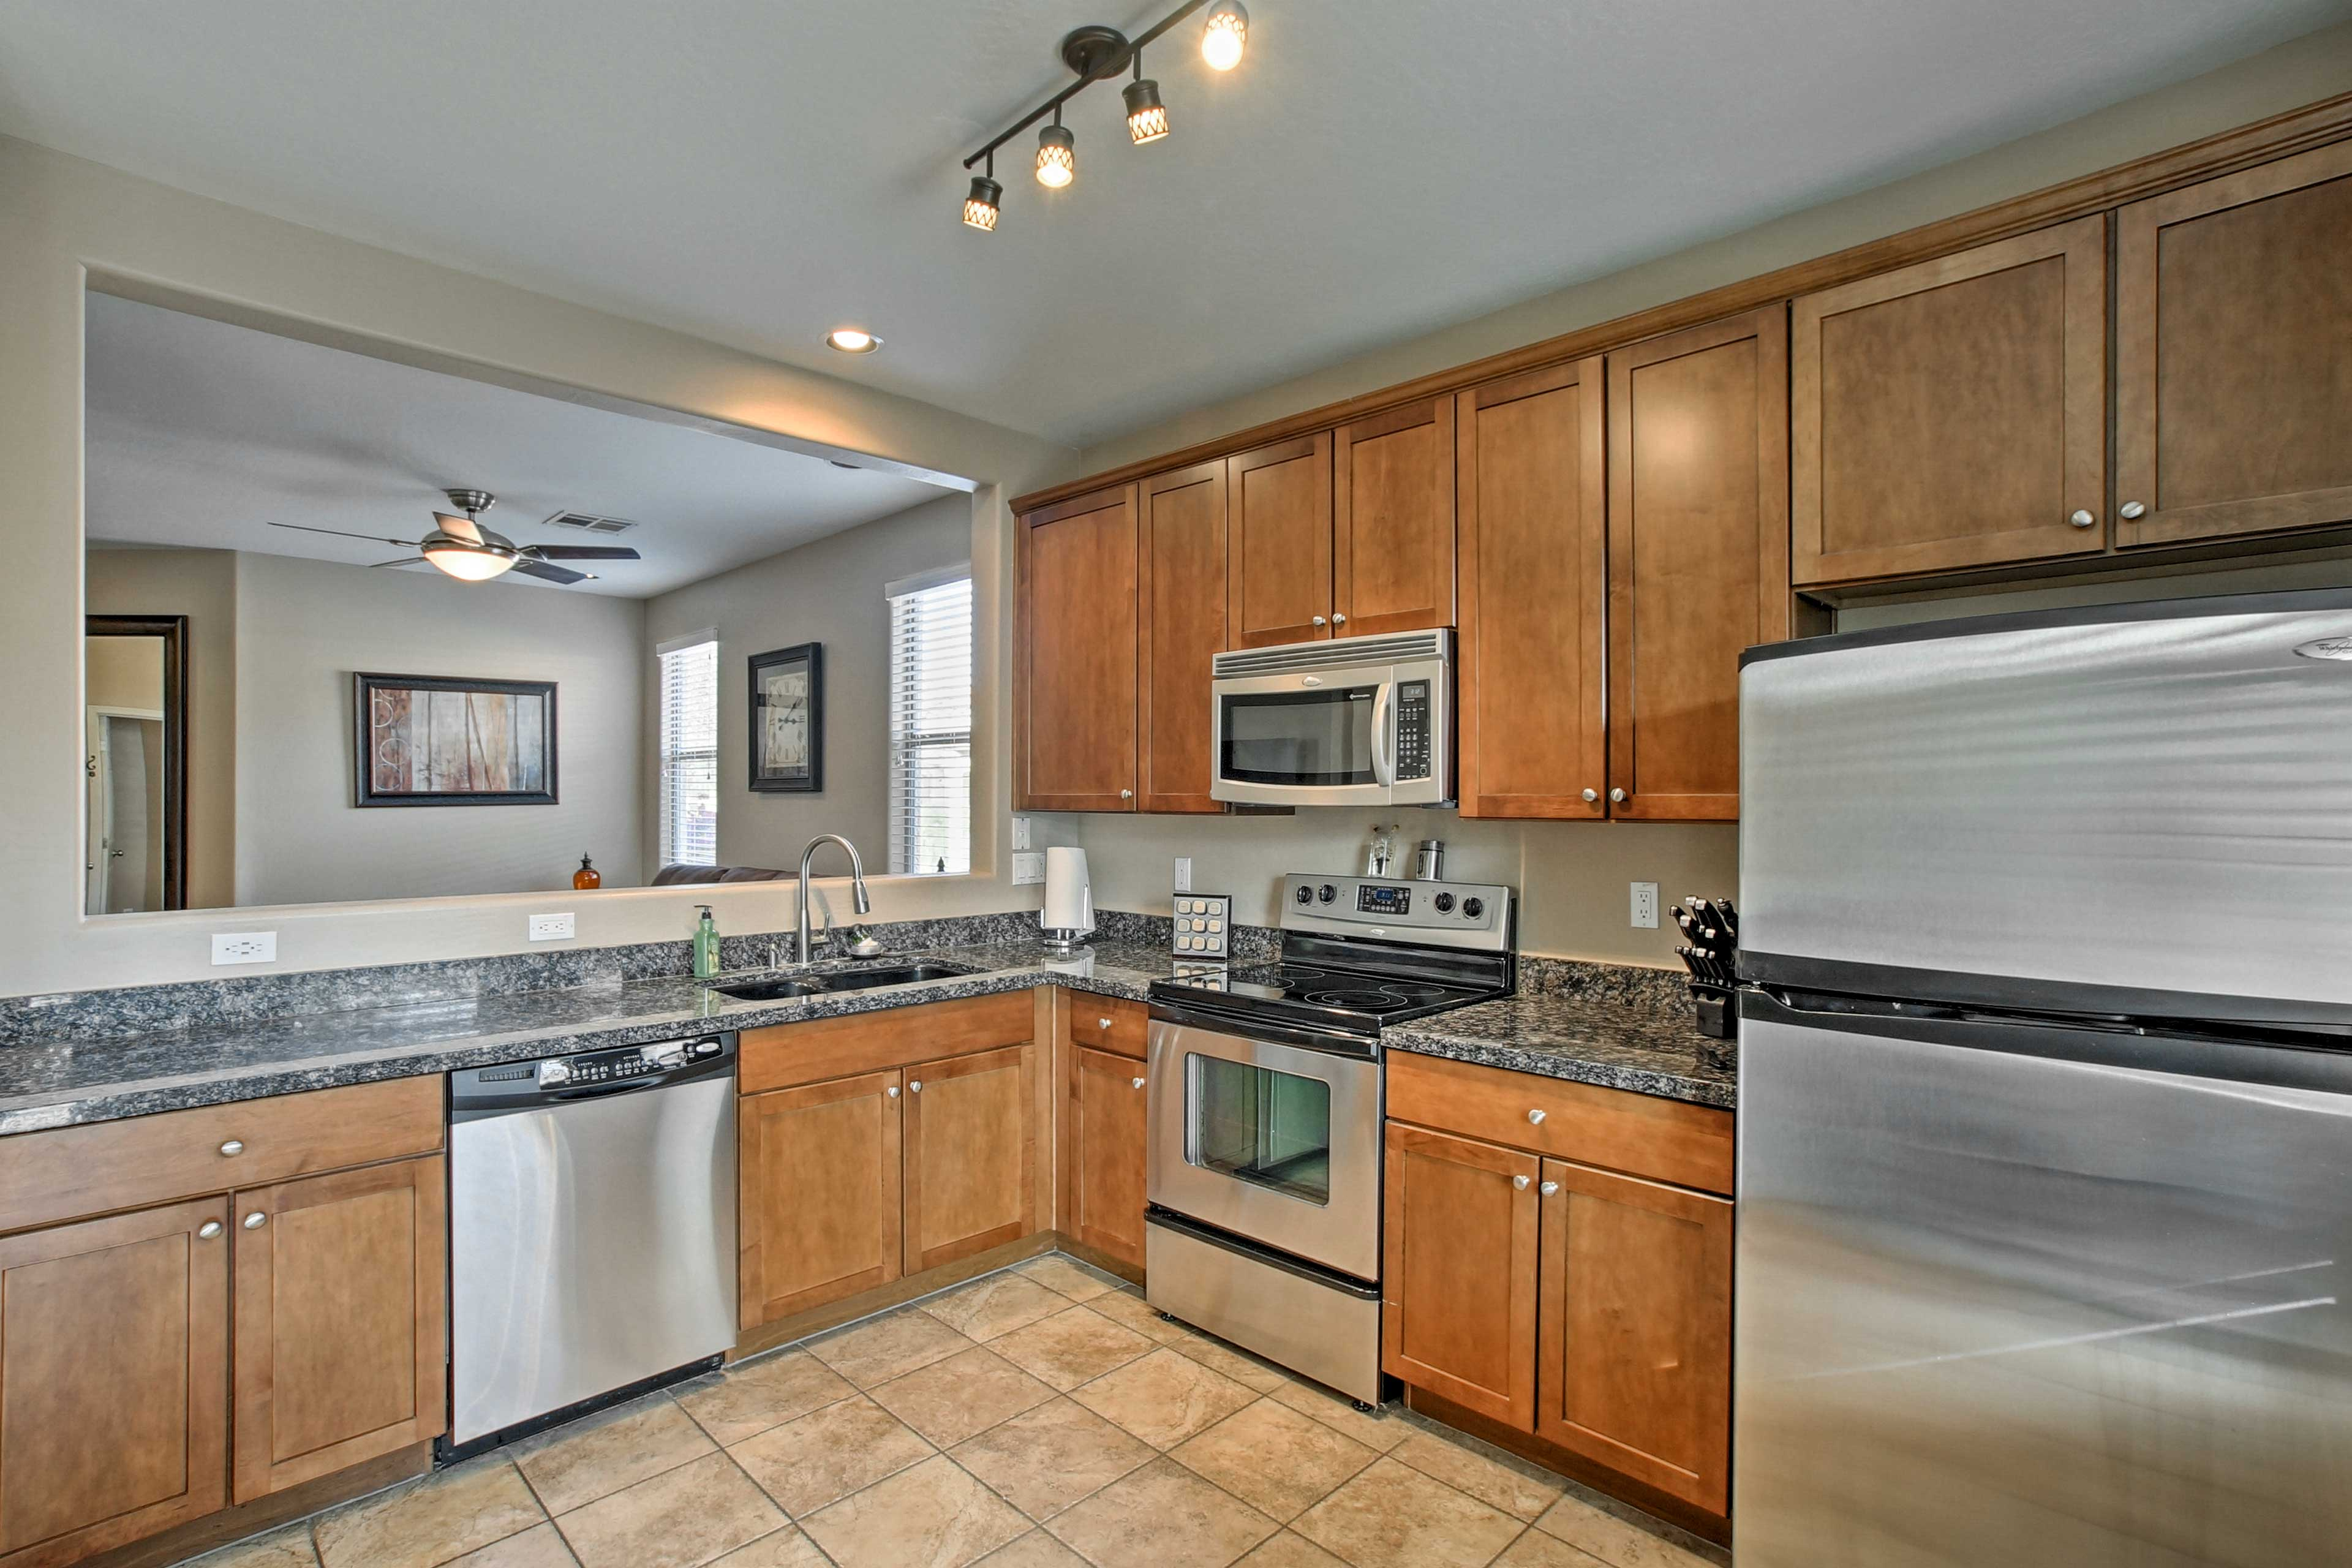 Cooking is a breeze with ample counter space!